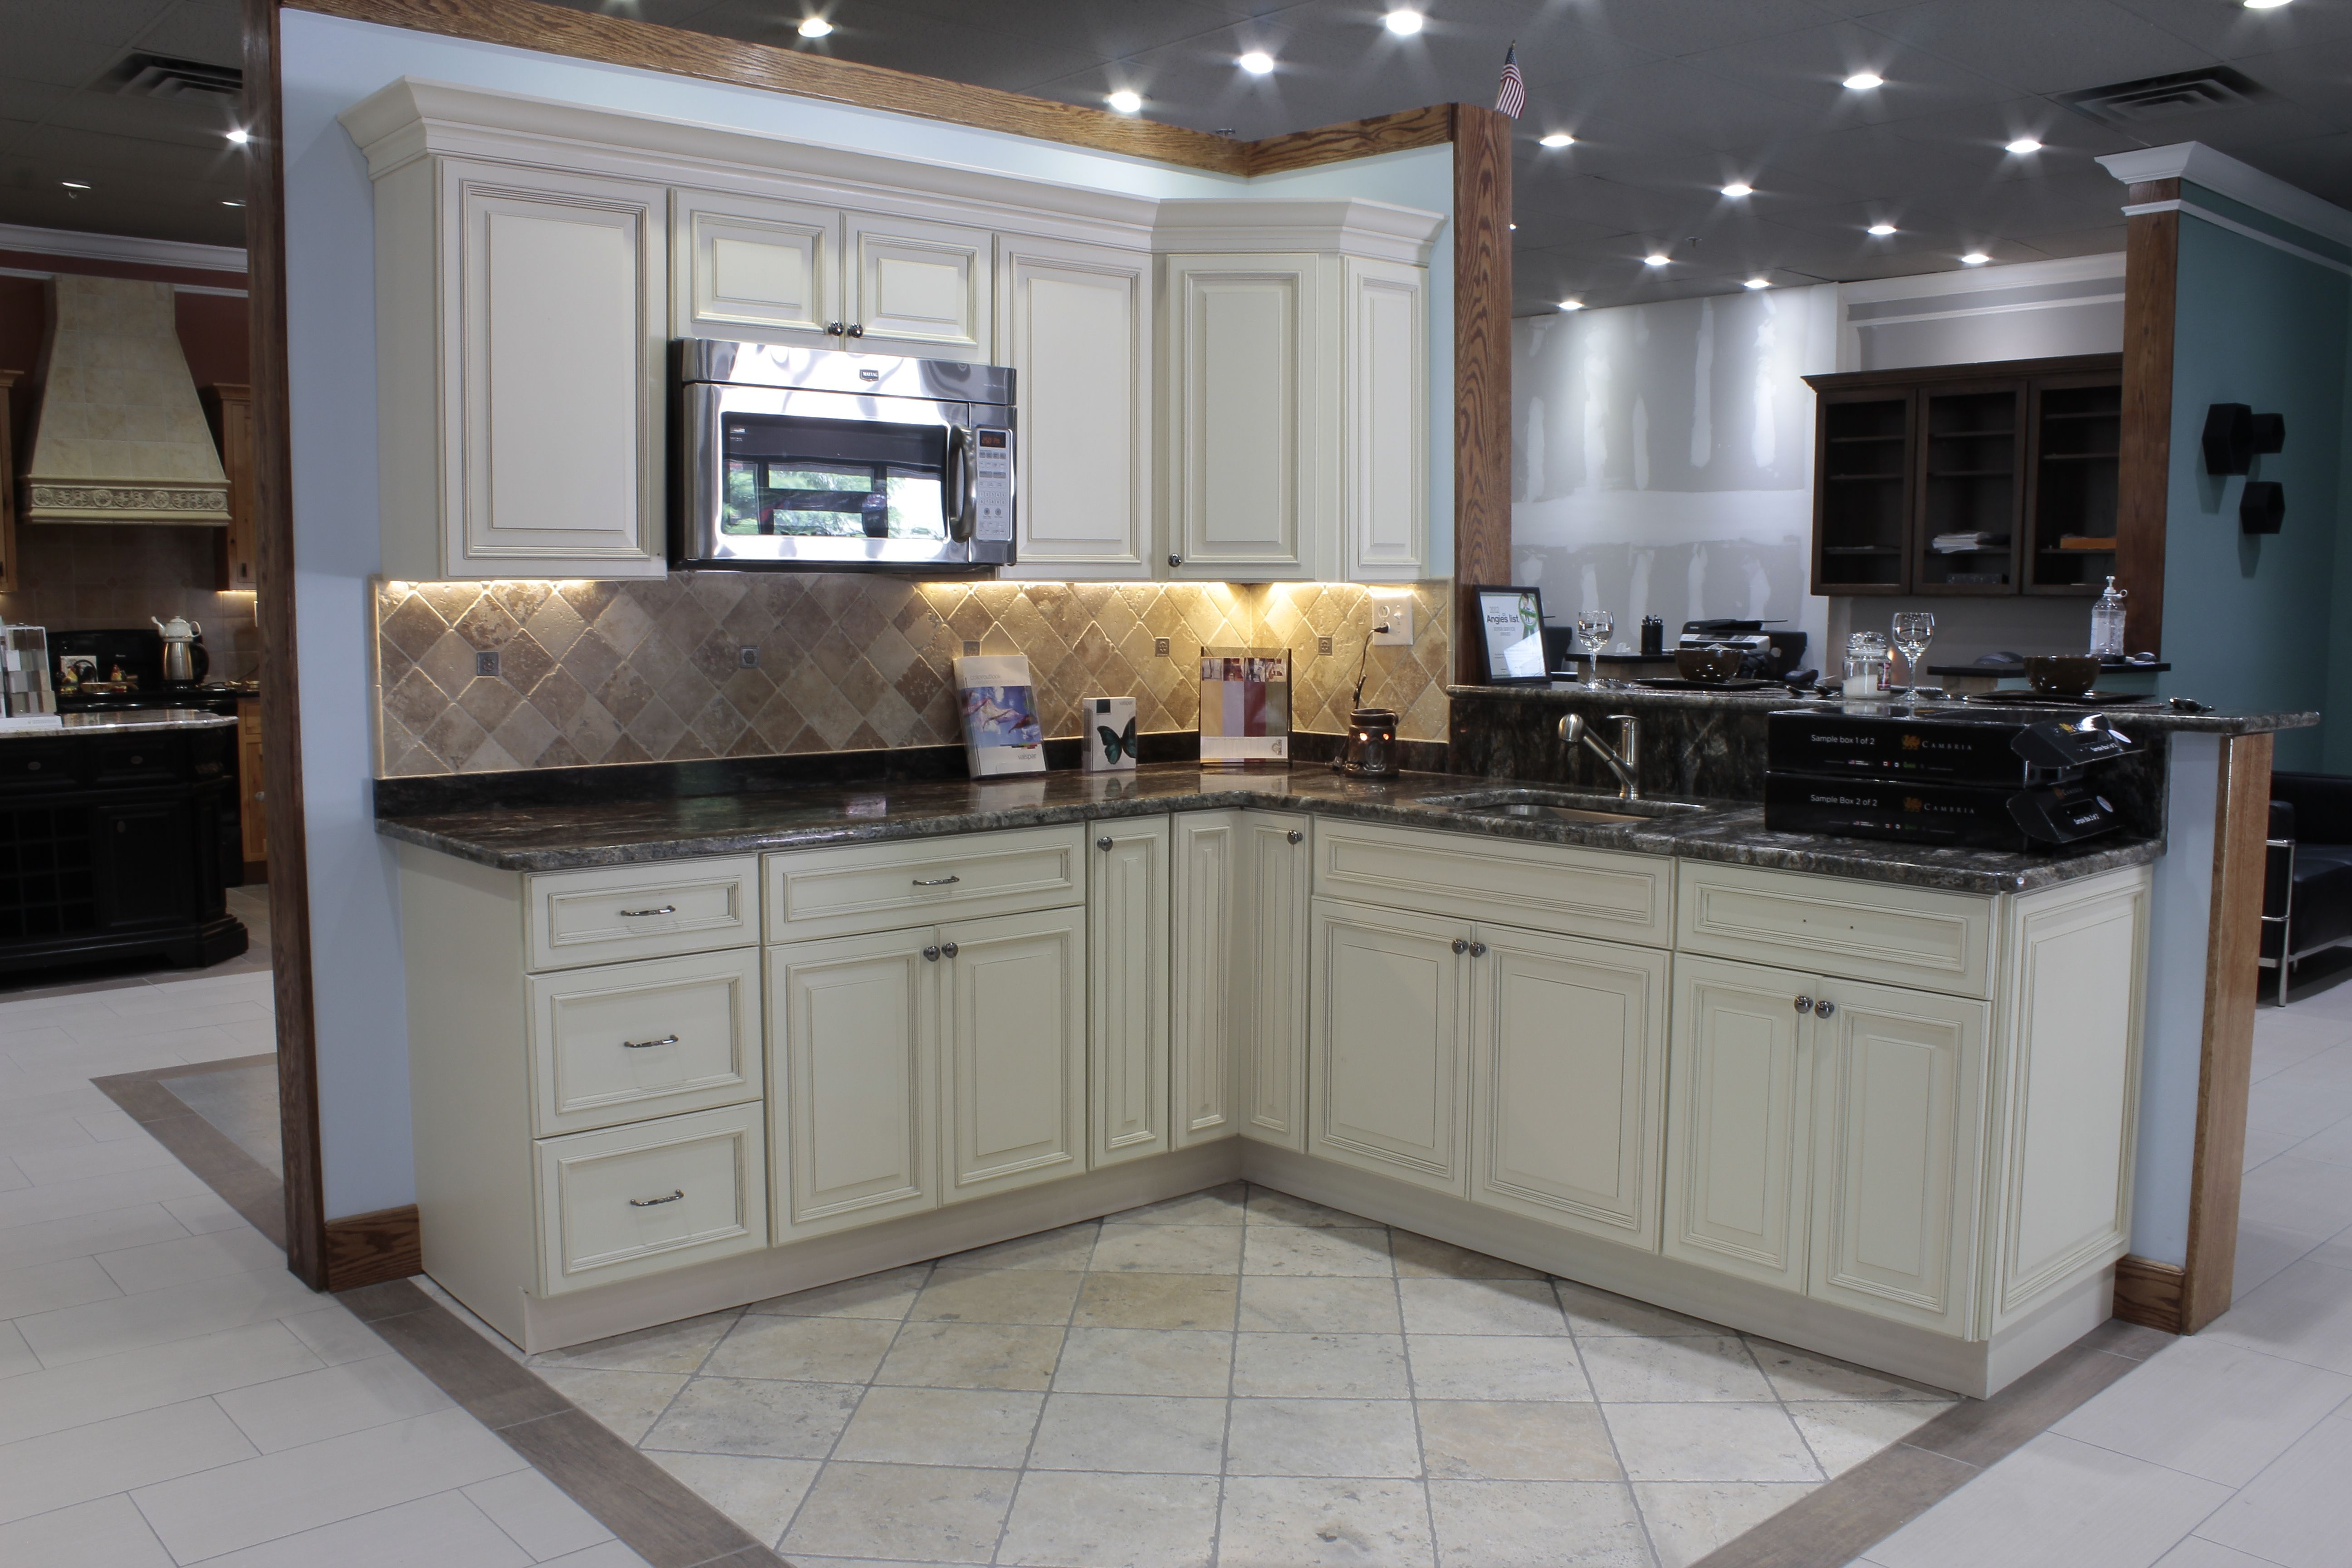 Best kitchen designs with builders warehouse inspiring cabinets home design pinterest for Builders warehouse kitchen designs